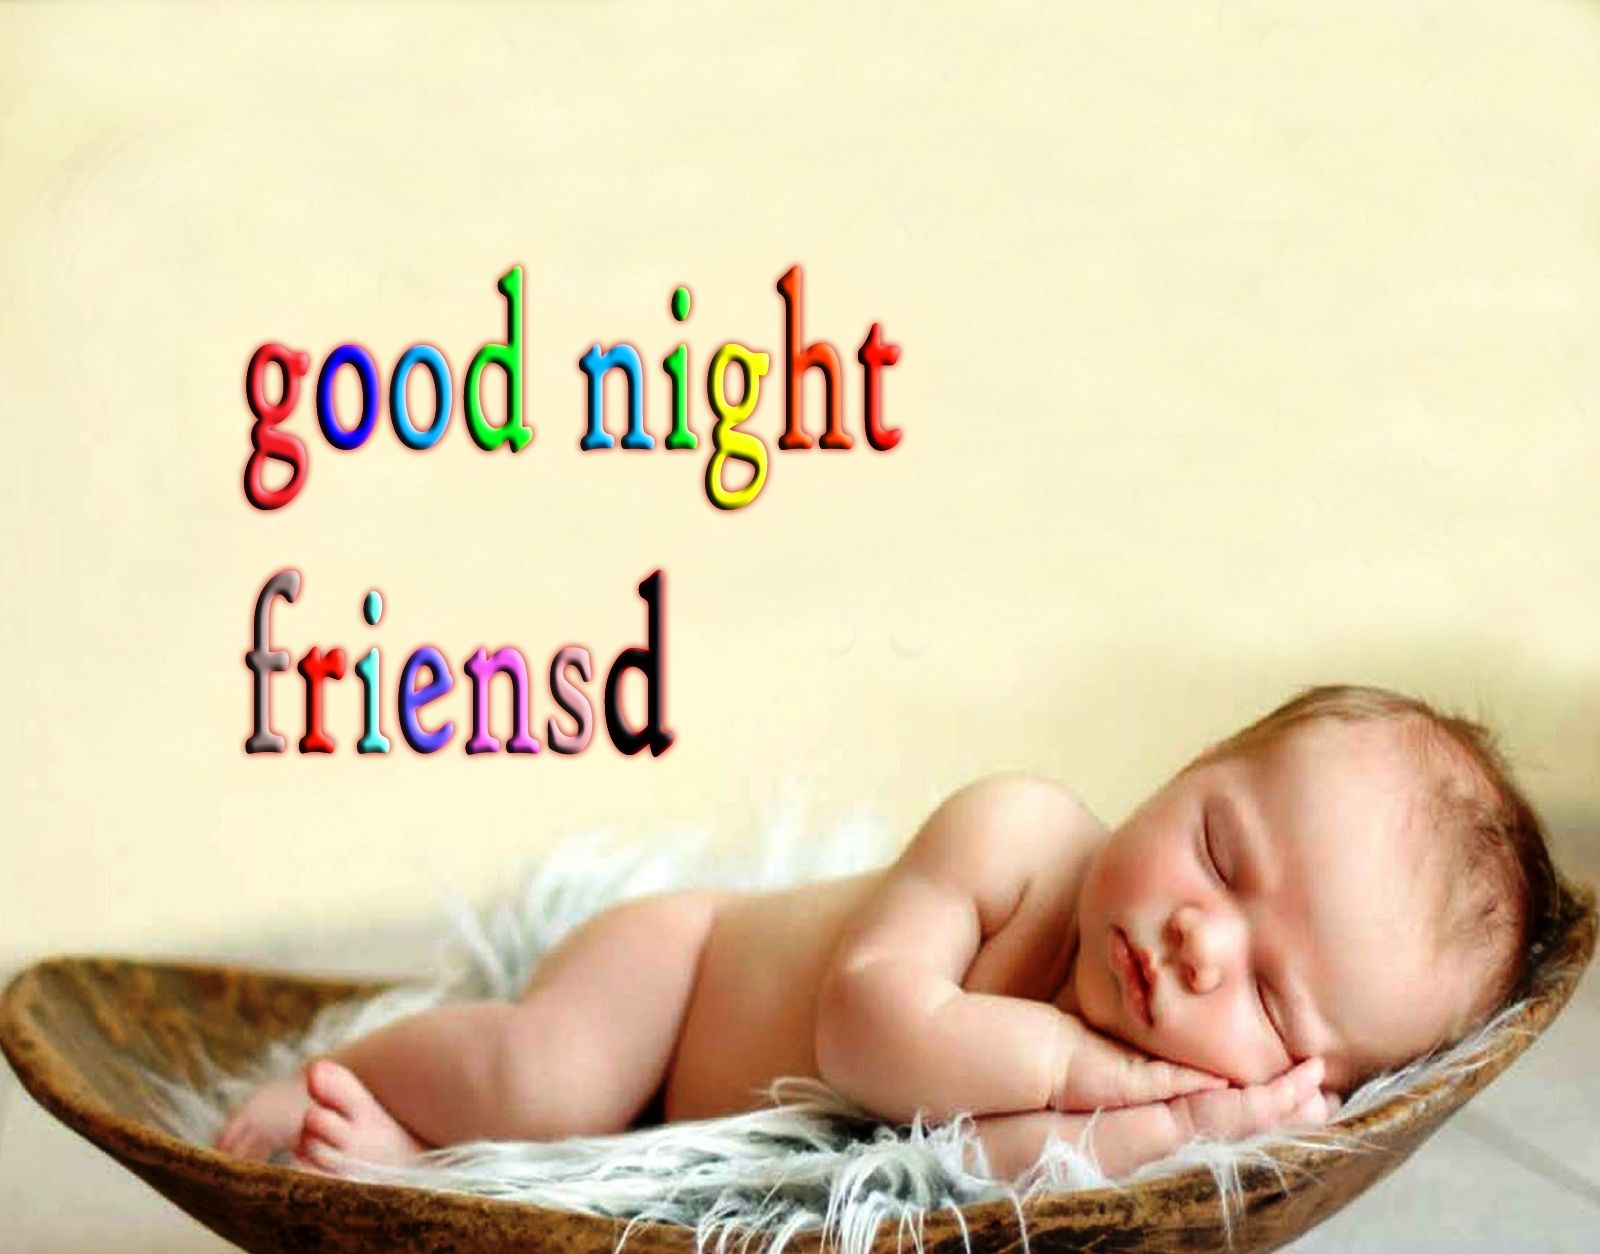 Free Download Good Night Sms Funny Good Night Photos Good Night Funny Good Night Friends